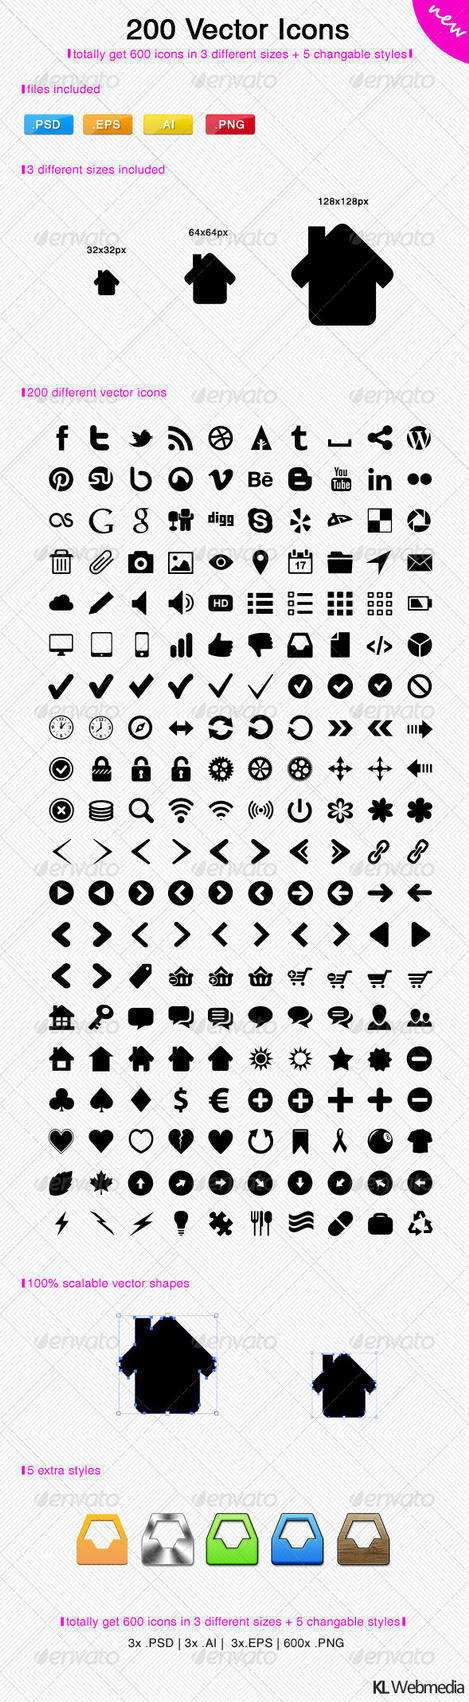 200 Vector Icons by KL-Webmedia